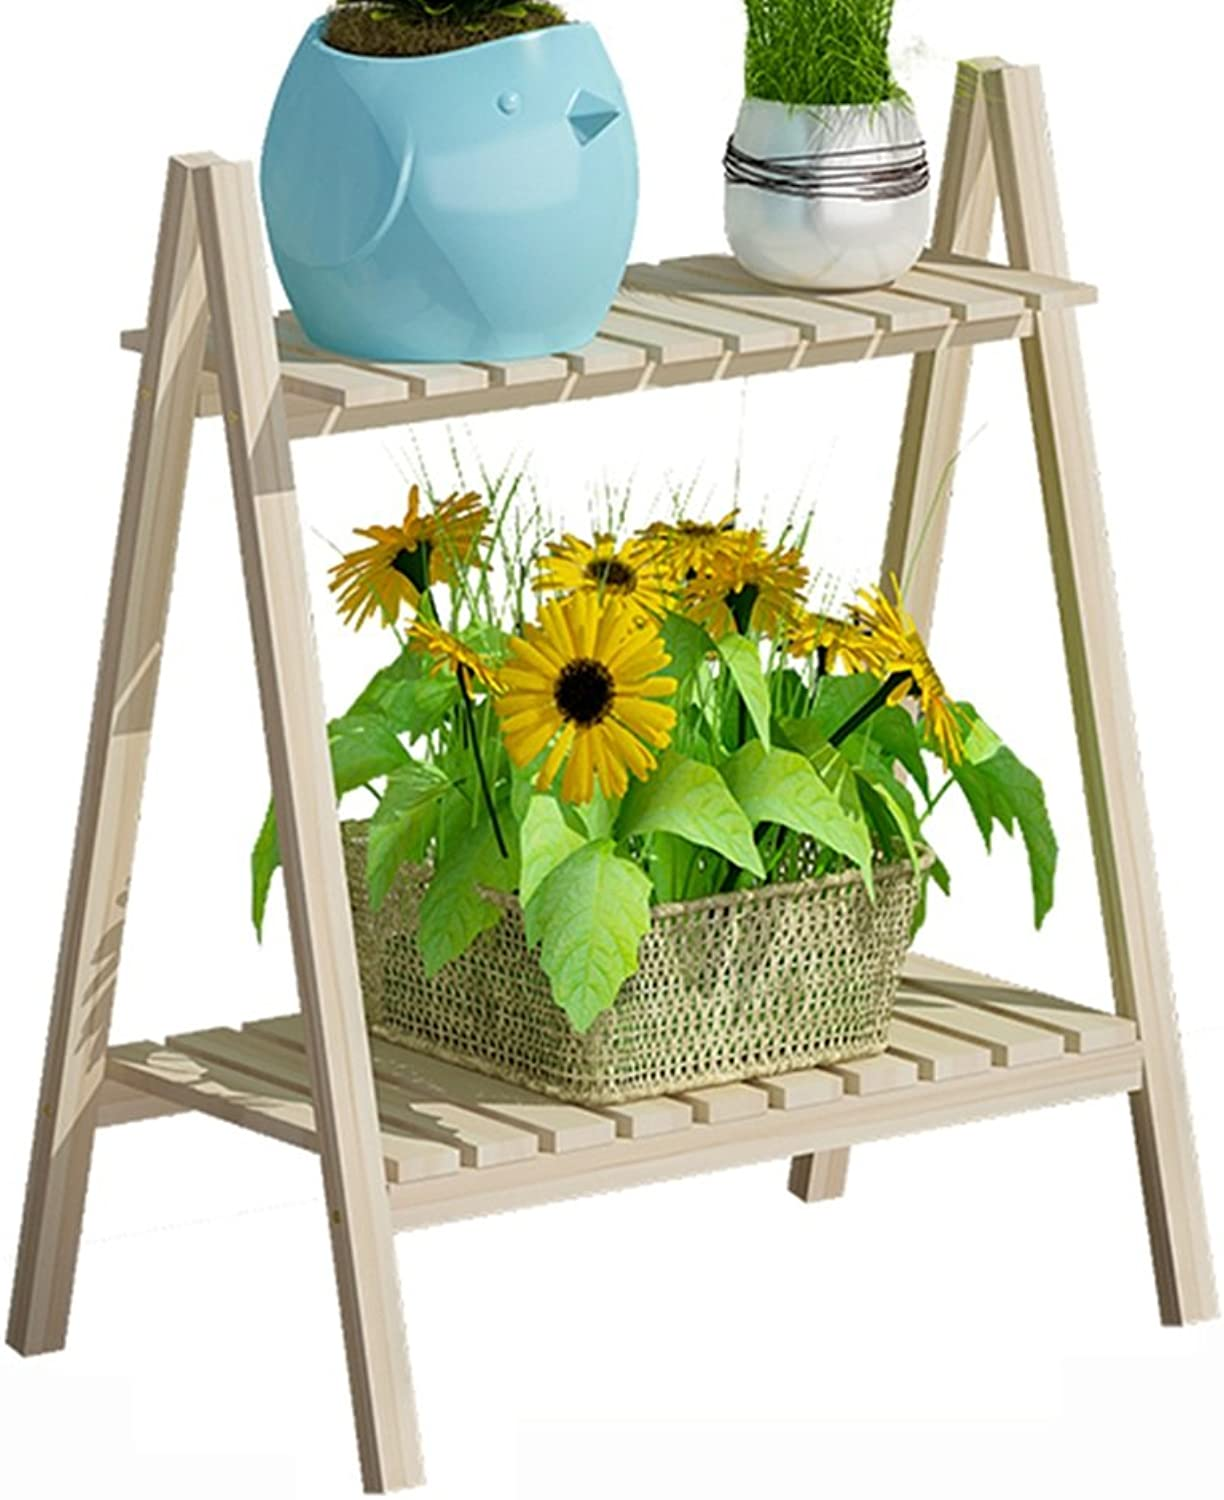 ZZHF yushizhiwujia Storage Racks Floor Type Solid Wood Flower Stand Living Room Balcony Garden Multilayer Folding Flowerpot Rack (Size   59  30  50.5CM)